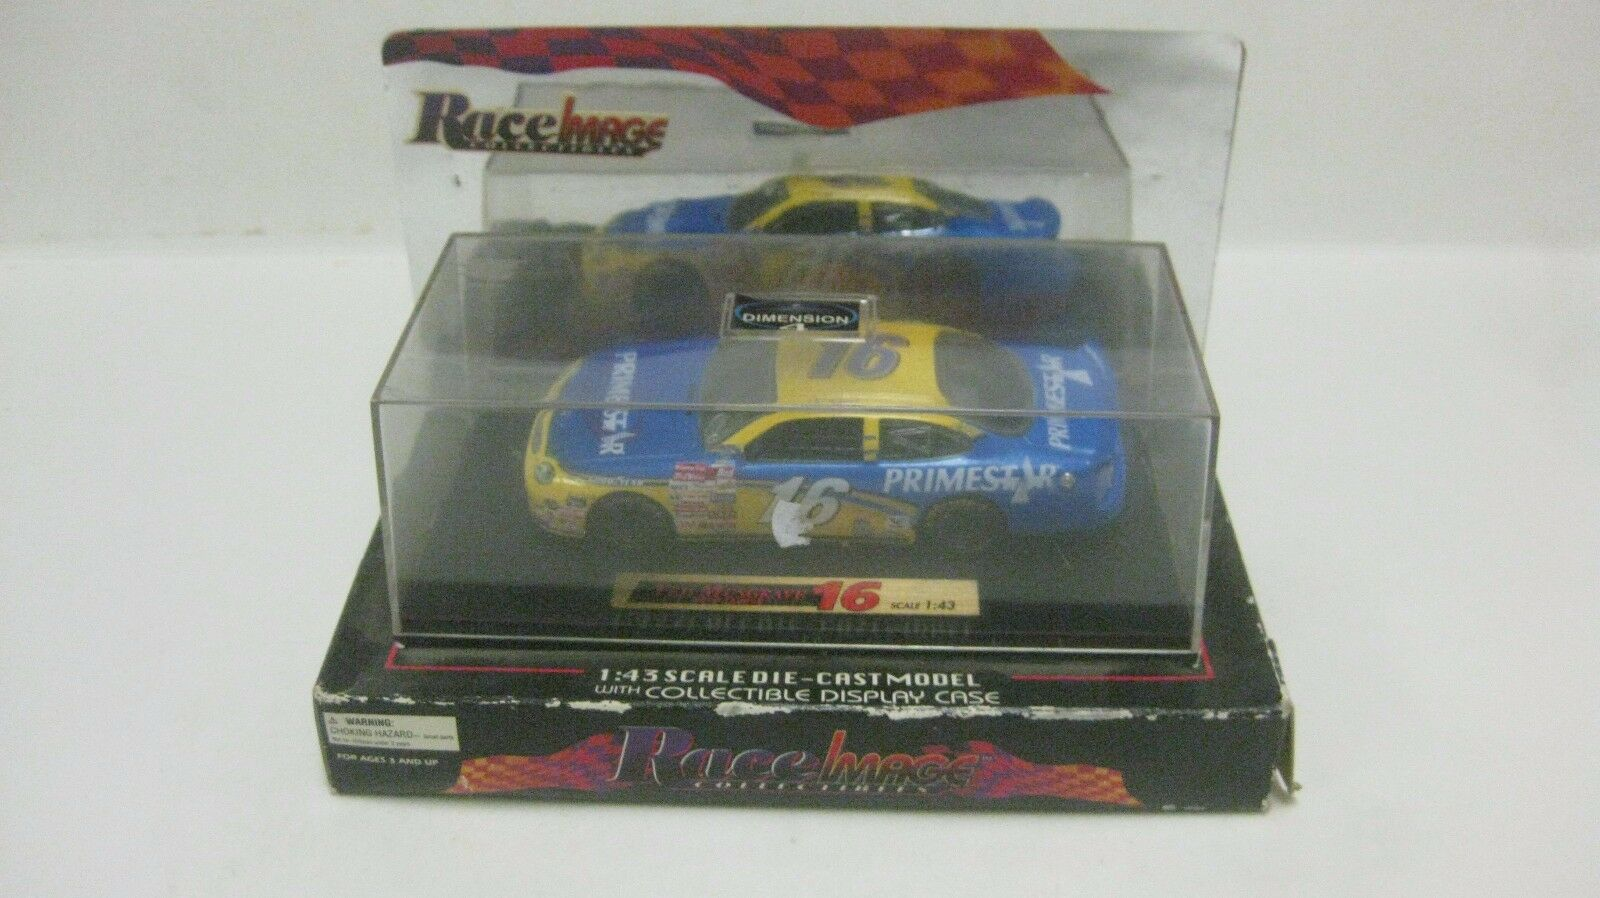 Nascar Race Image Ted Musgrave Primestar Ford Taurus 1 43 43 43 Diecast NEW dc1787 979307